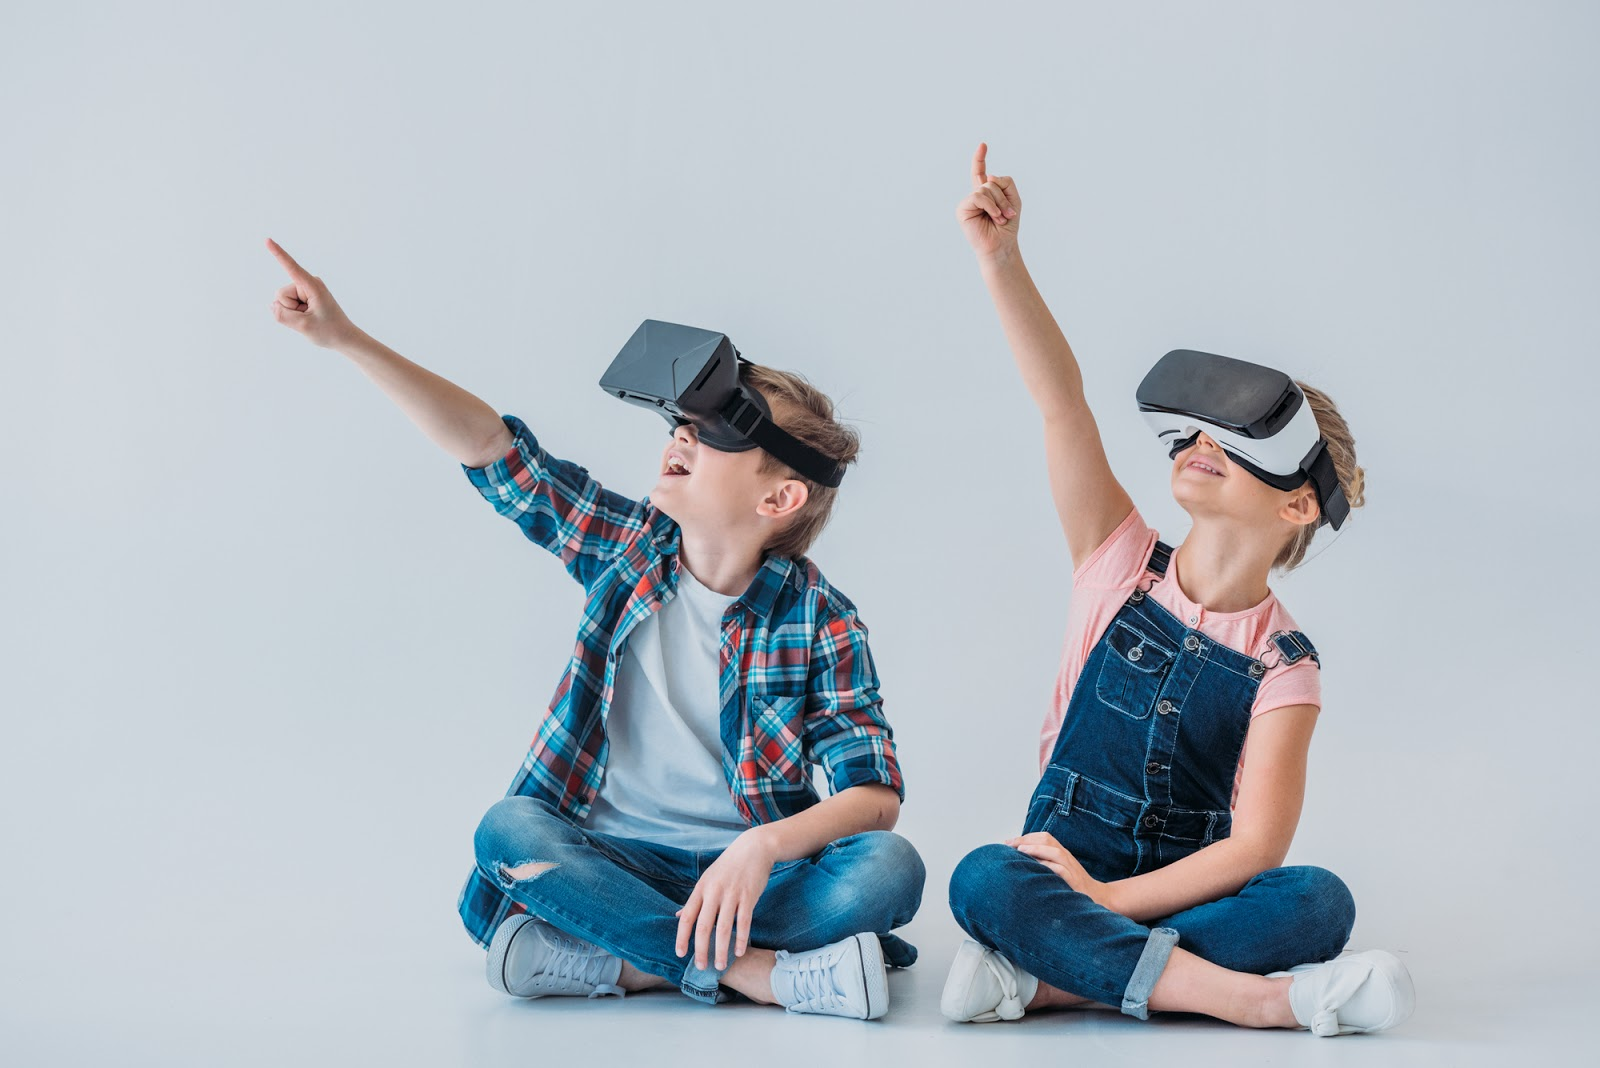 Title Image: 5 VR Headsets for the Classroom Giveaway